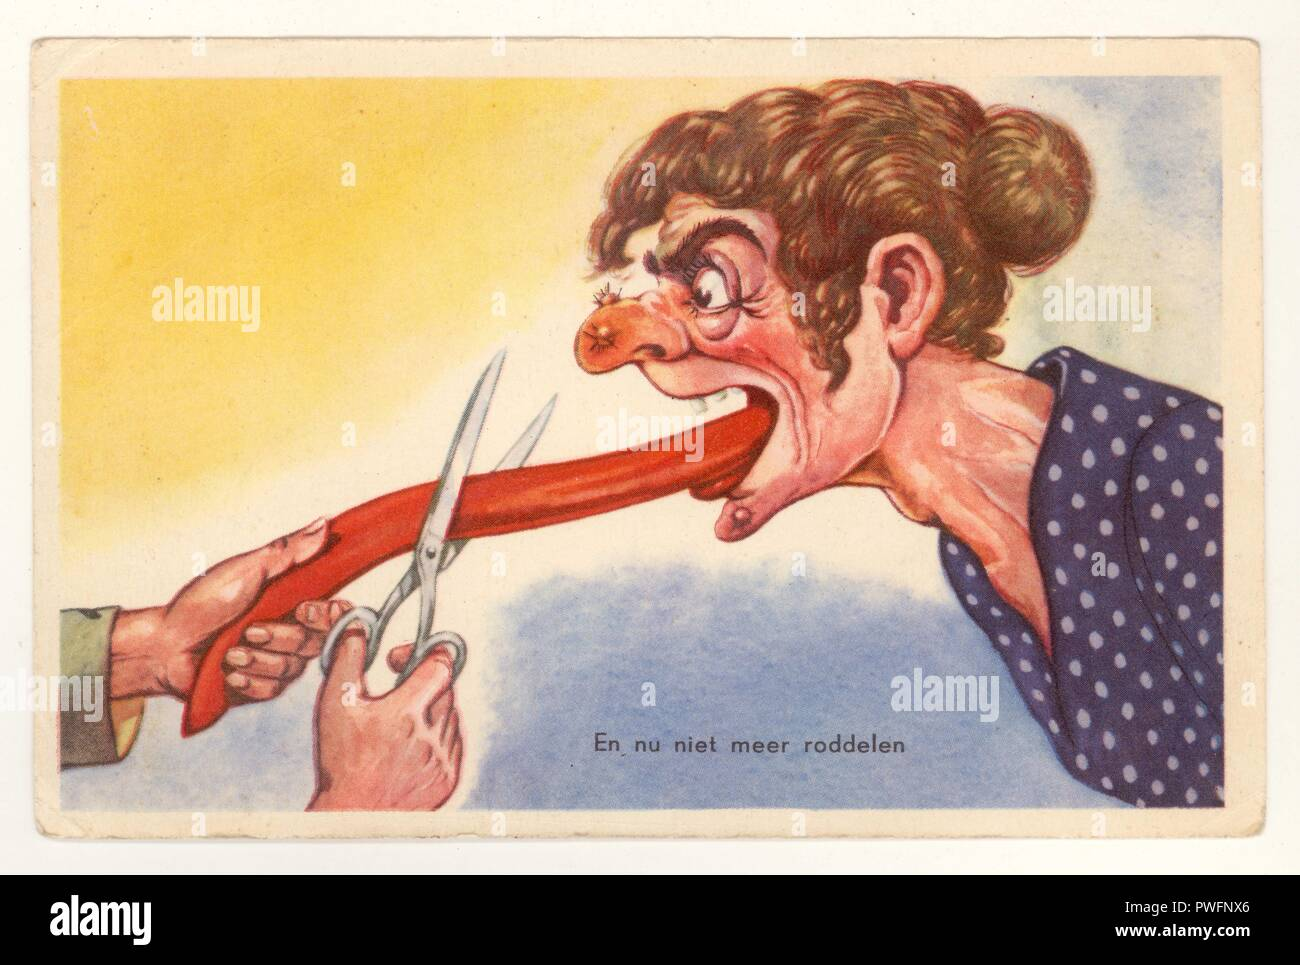 """Early Dutch 1900s cruelly comic anti- suffrage, anti-feminist postcard,  from the Netherlands, depicting a woman having tongue cut off to stop her gossiping (silencing women) - postcard reads """"en nu niel meer roddelen """" , printed in Holland, possibly 1930's Stock Photo"""